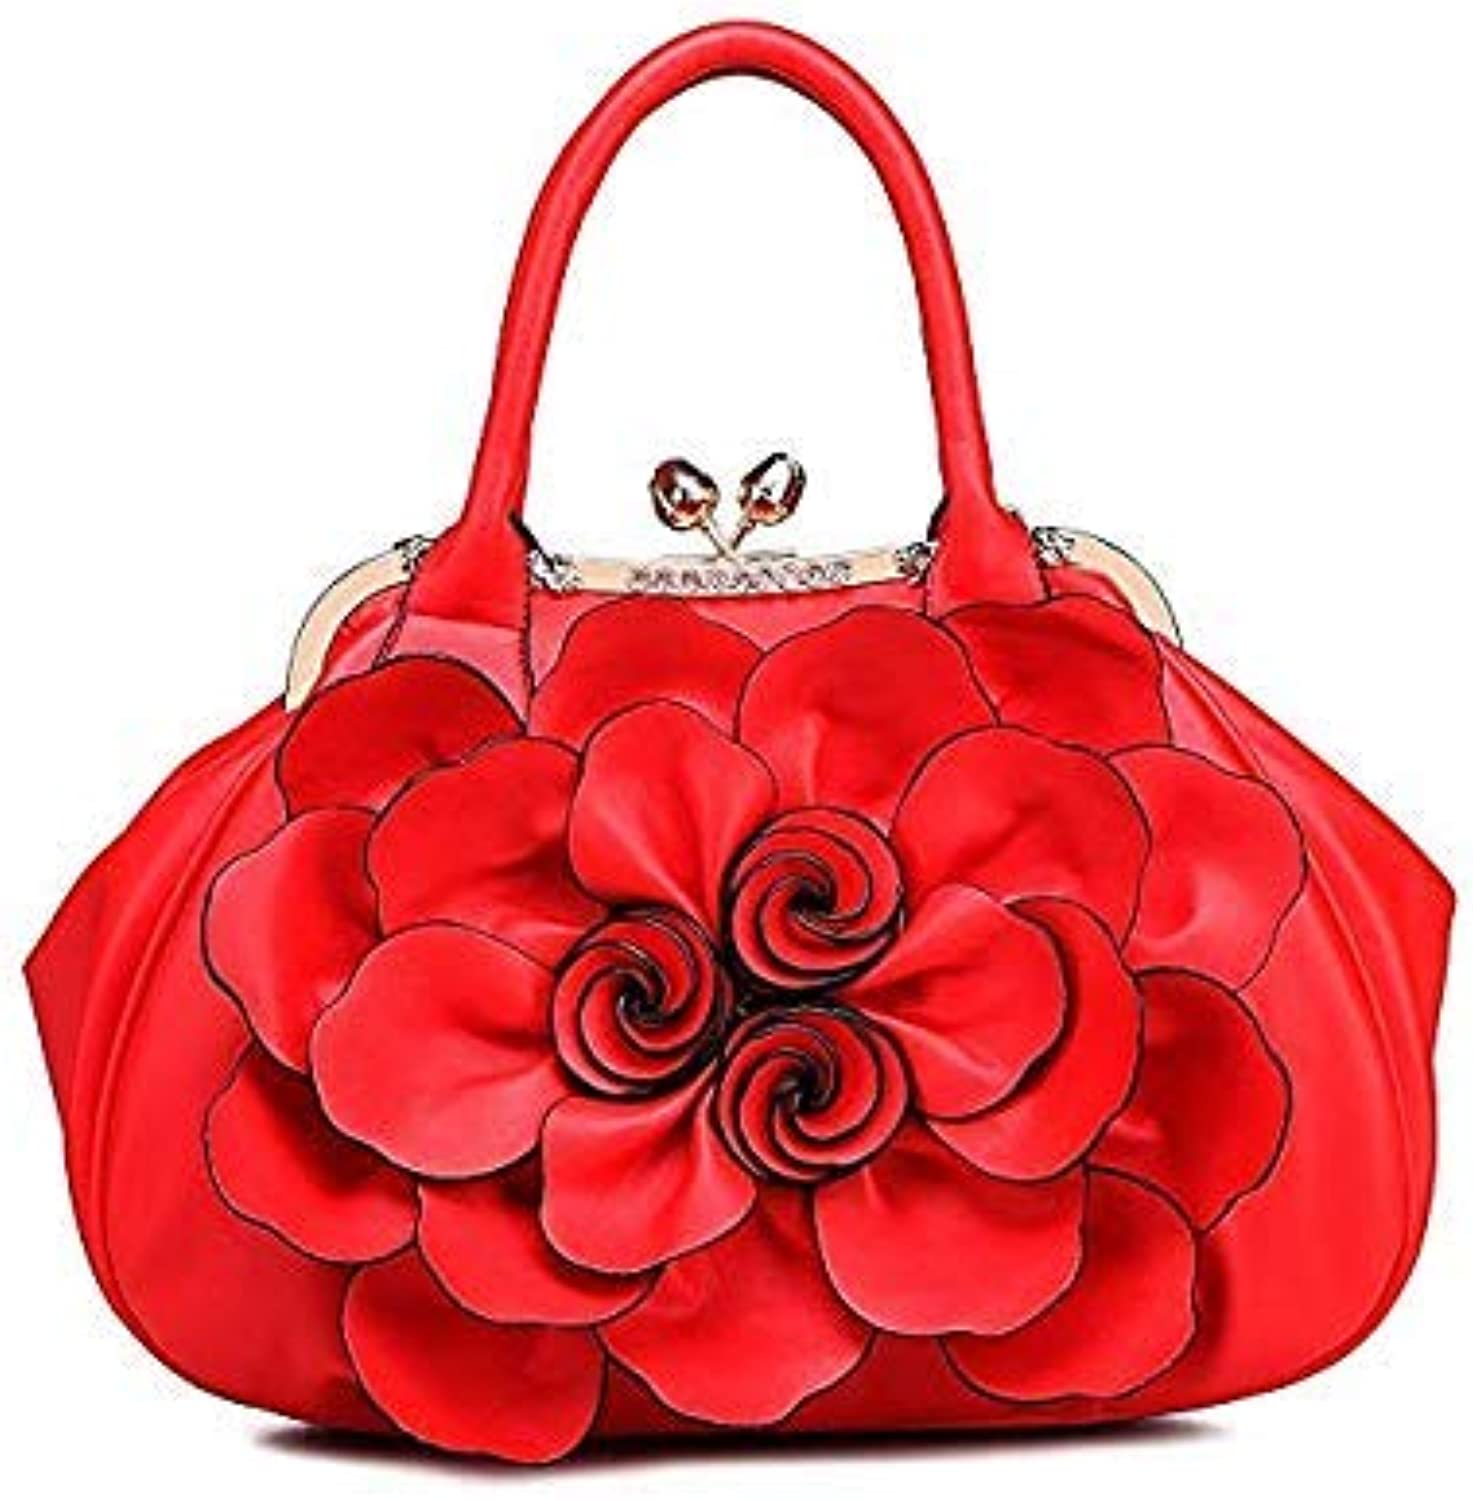 Bloomerang LADSOUL High Quality Elegant Women Bag Tote Bolsa Popular Floral Women Handbags Big Flower Luxury Shoulder Bags for Women A734 g color red 38x14x39CM